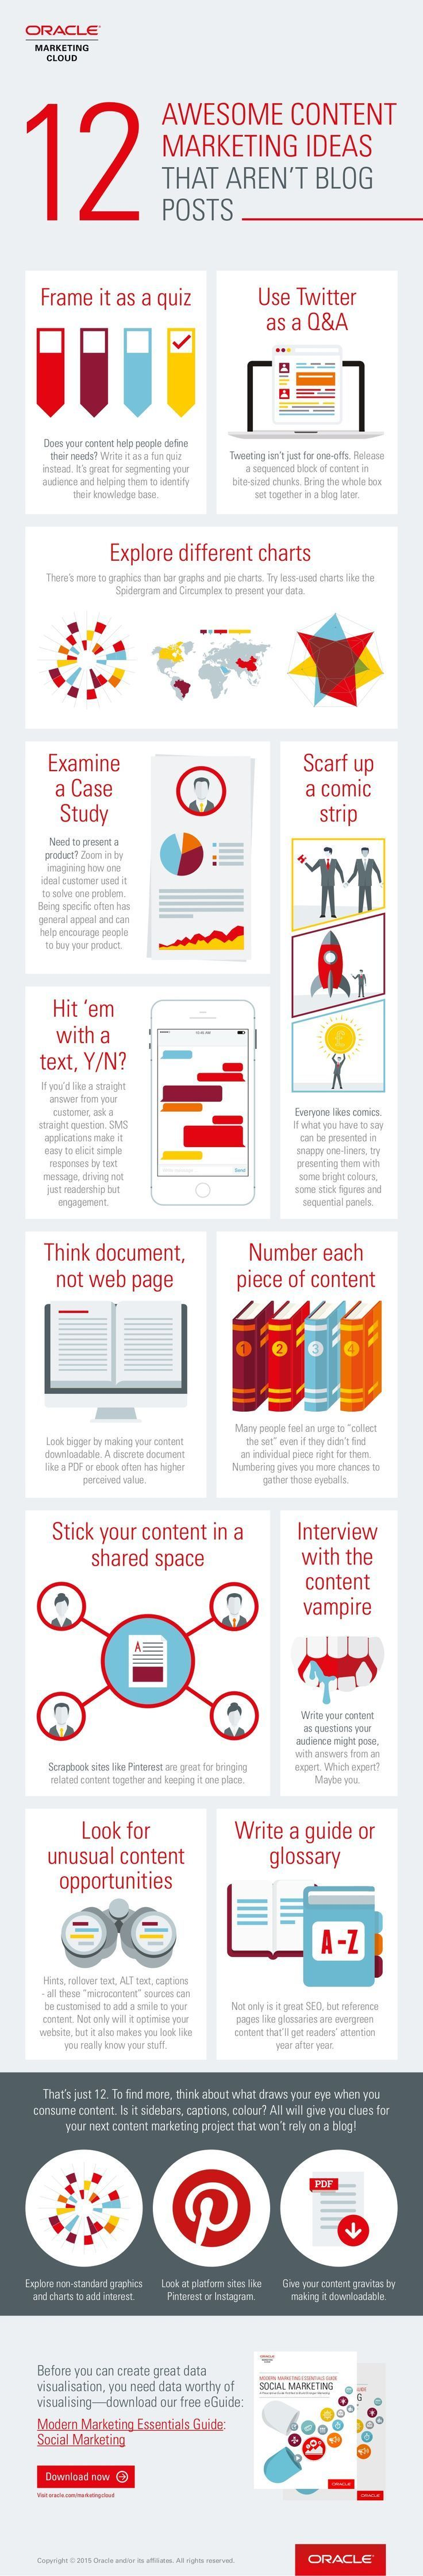 12 Awesome #ContentMarketing Ideas That Aren't Blog Posts - #infographic AND Take this Free Full Lenght Video Training on HOW to Start an Online Business